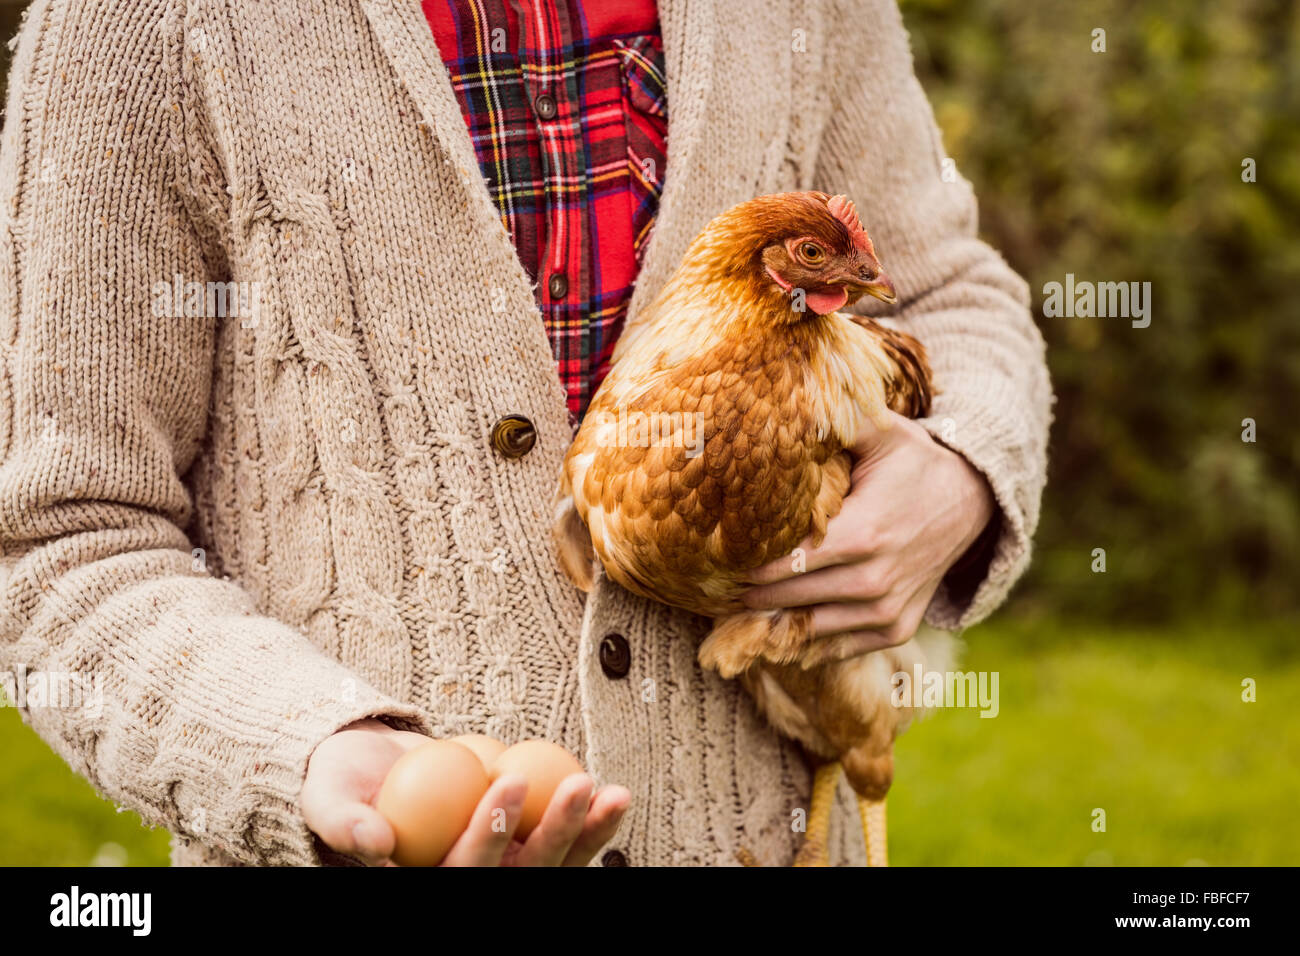 Man holding chicken and egg - Stock Image